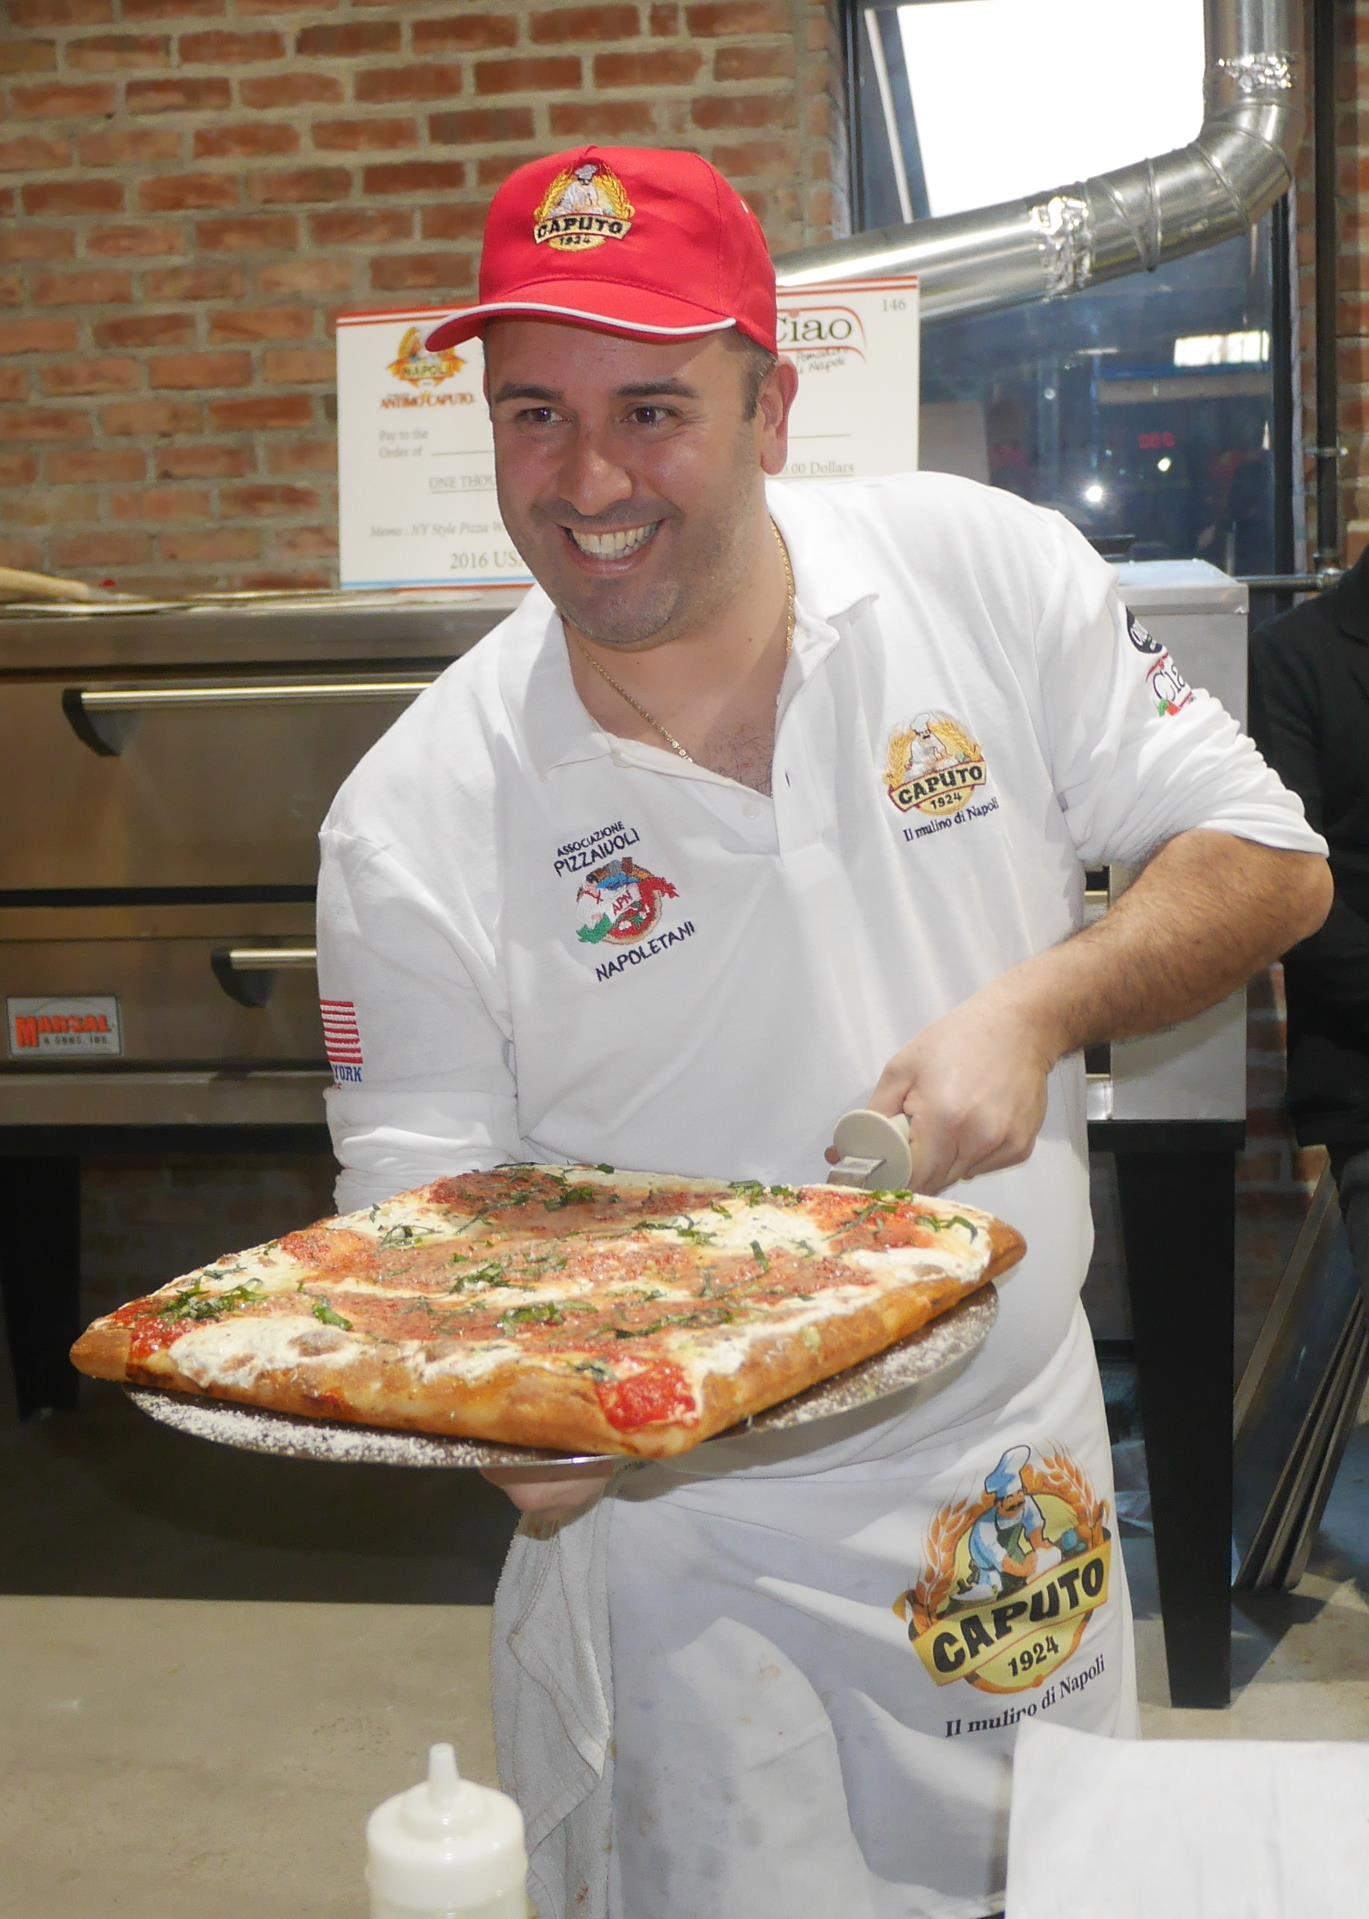 concorrente USA pizza